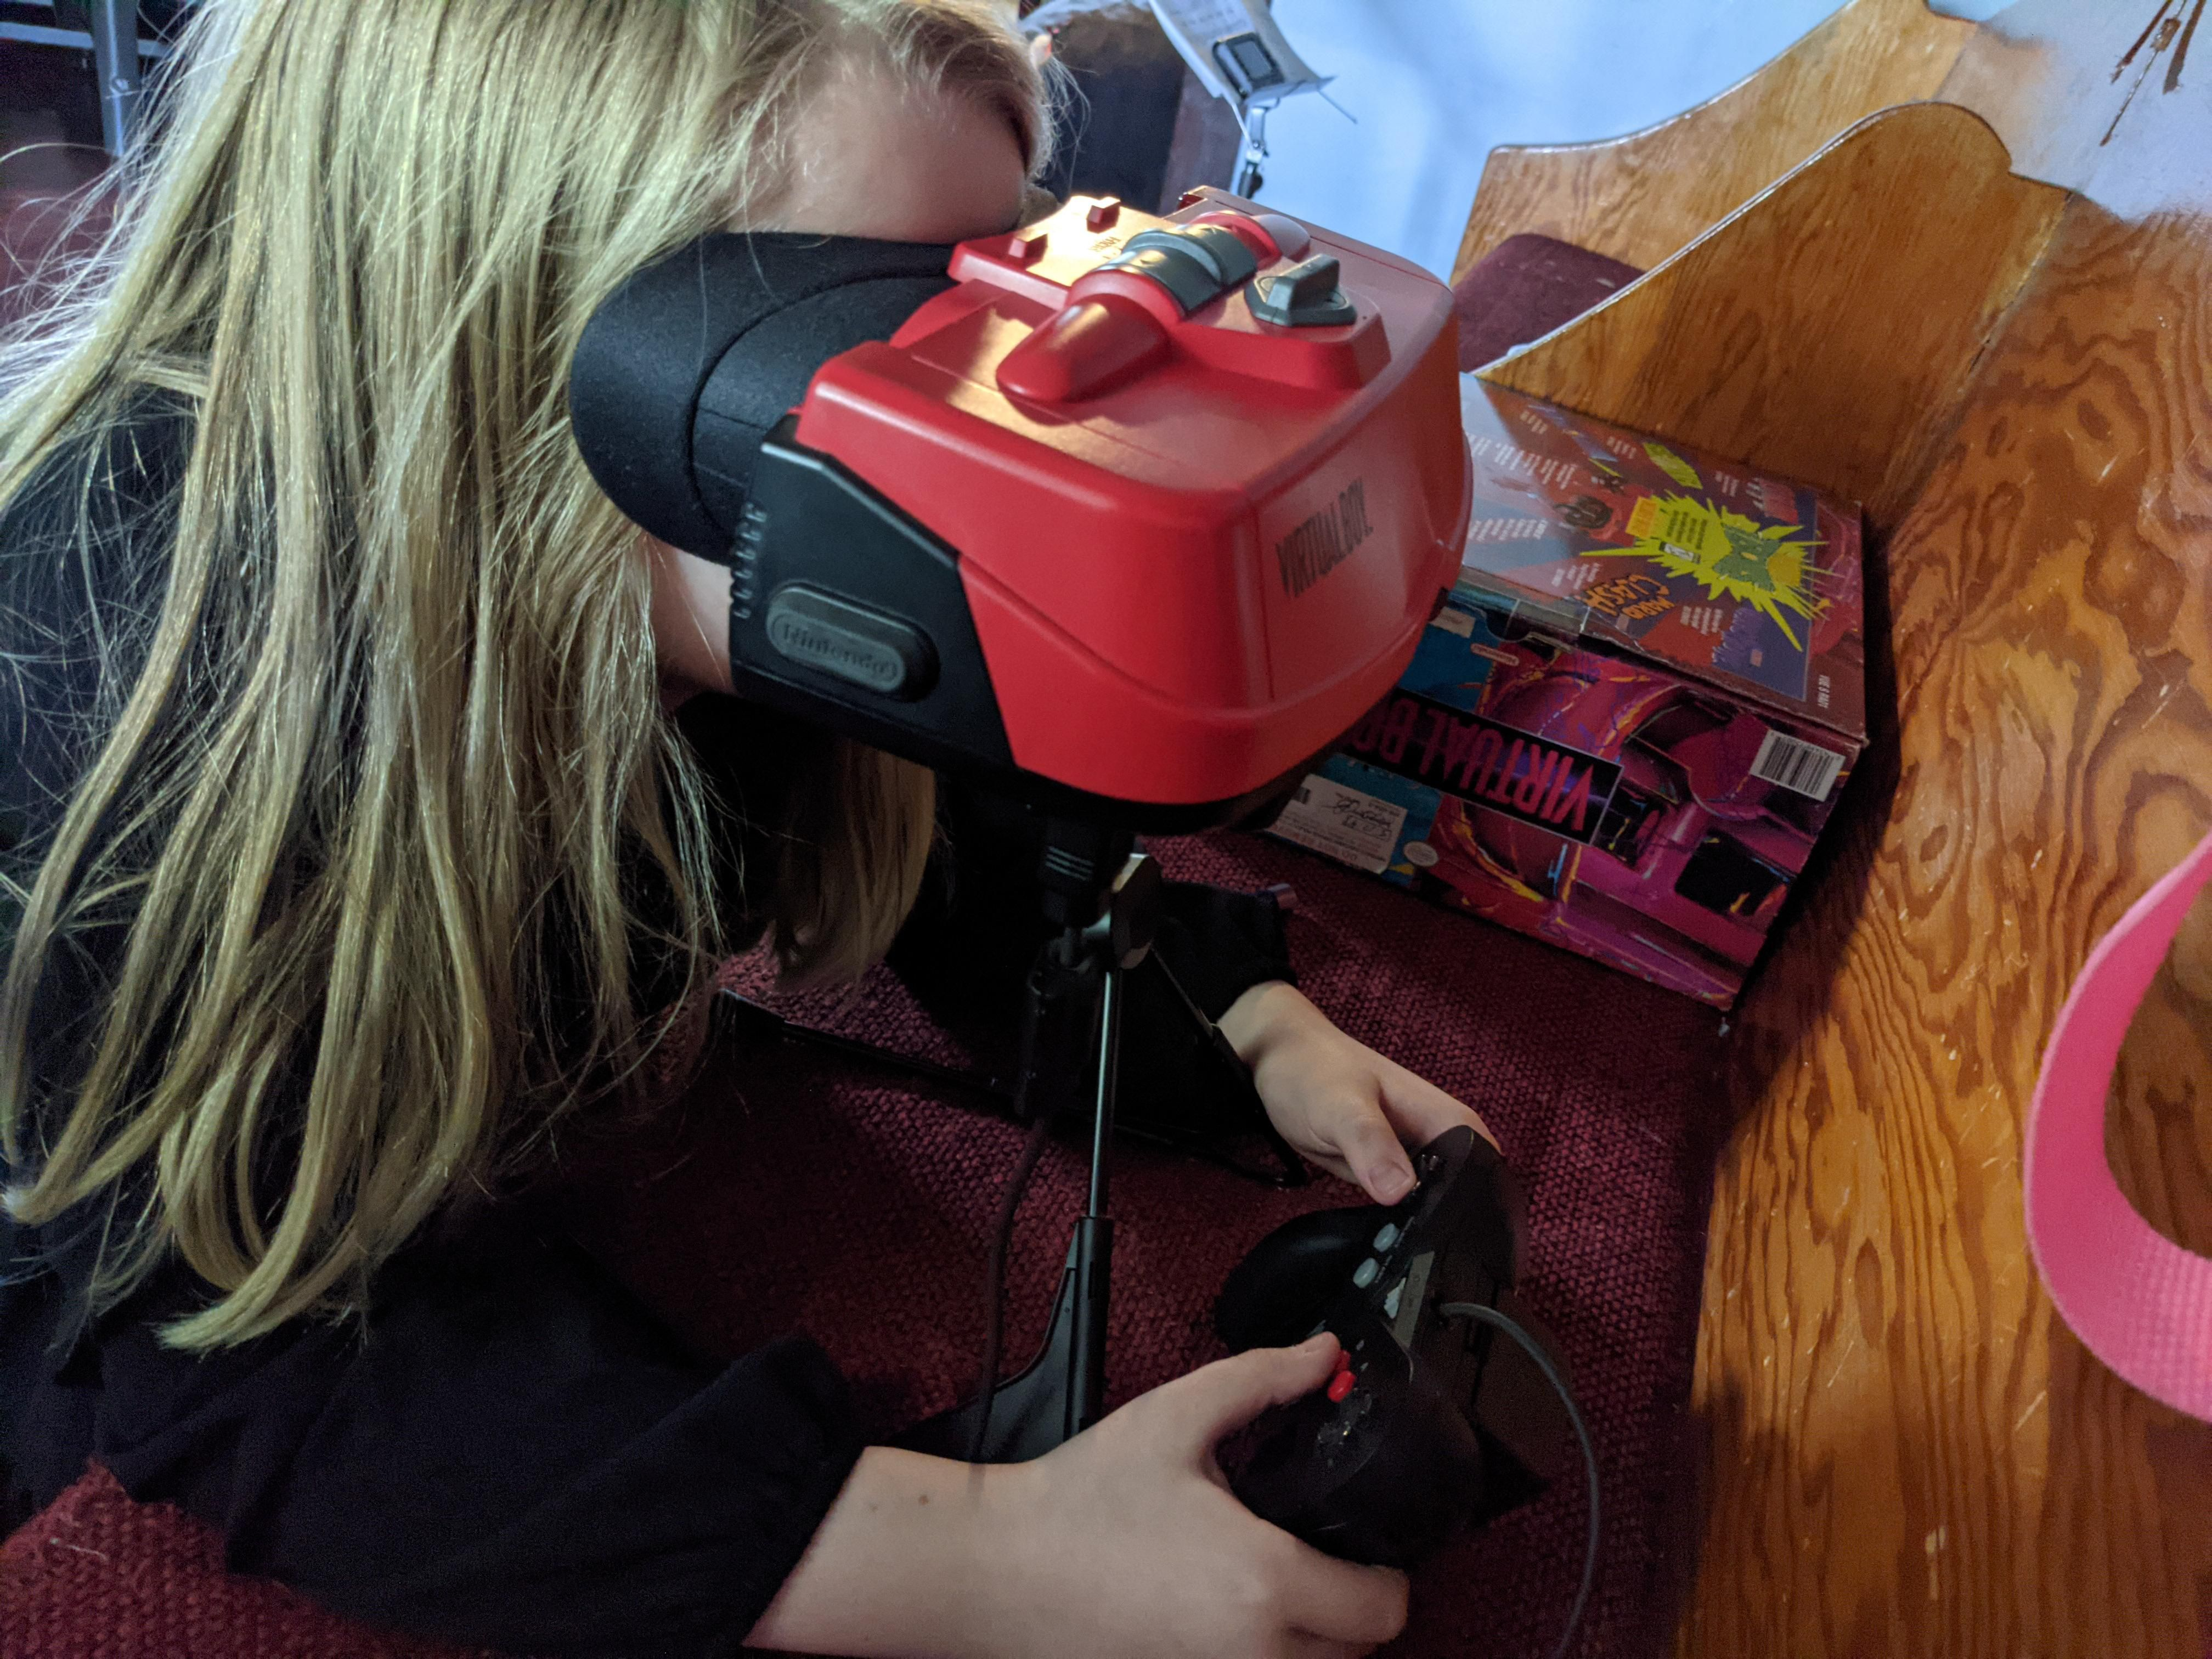 My kids been bugging the crap out of me for a VR rig. Shes 10. I gave her this 95 Virtual boy and told her we had VR at home.